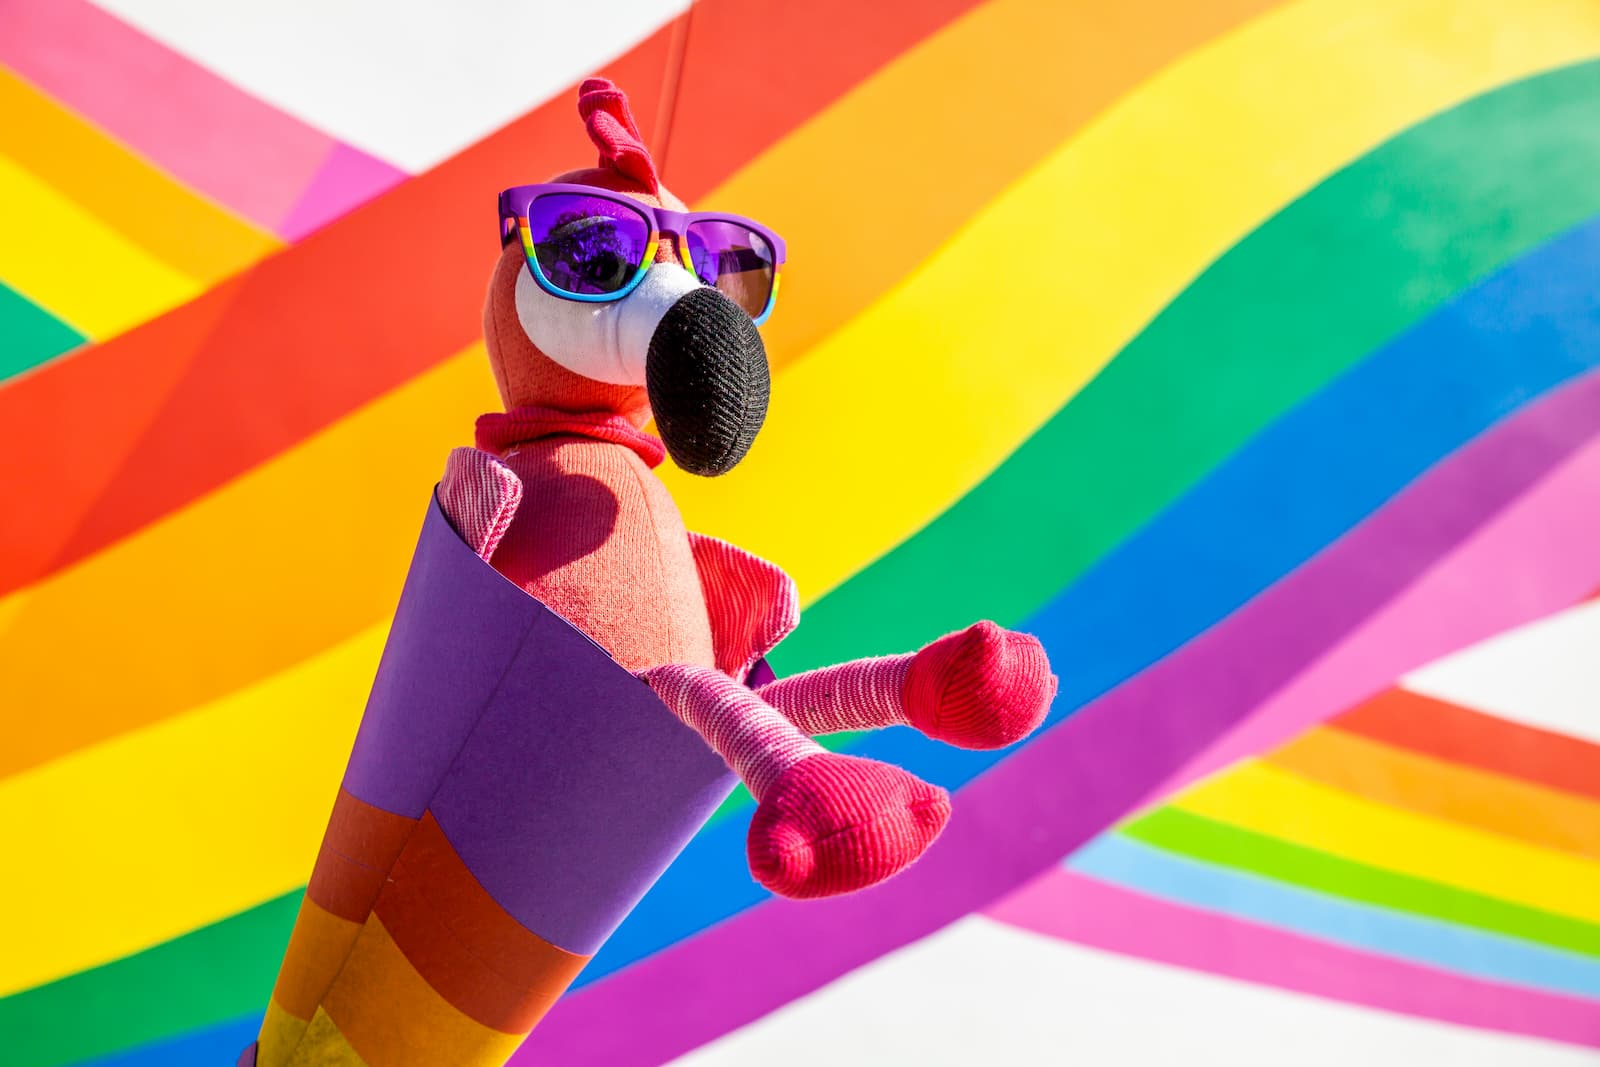 Carl the Flamingo goodr CEO celebrating pride day